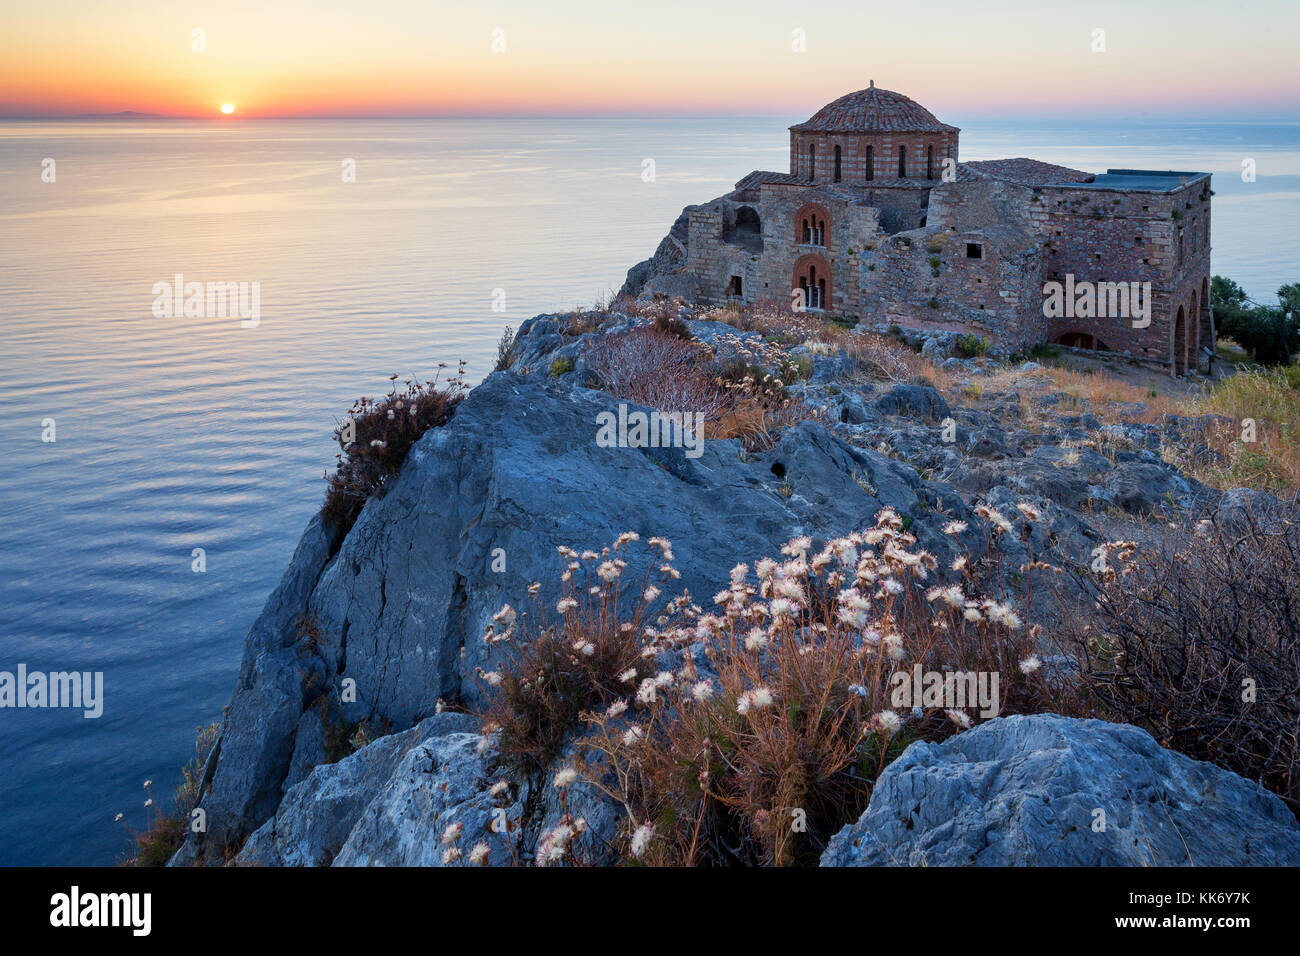 The Church of Agia Sofia in Monemvasia at sunrise, Peloponnese, Greece - Stock Image